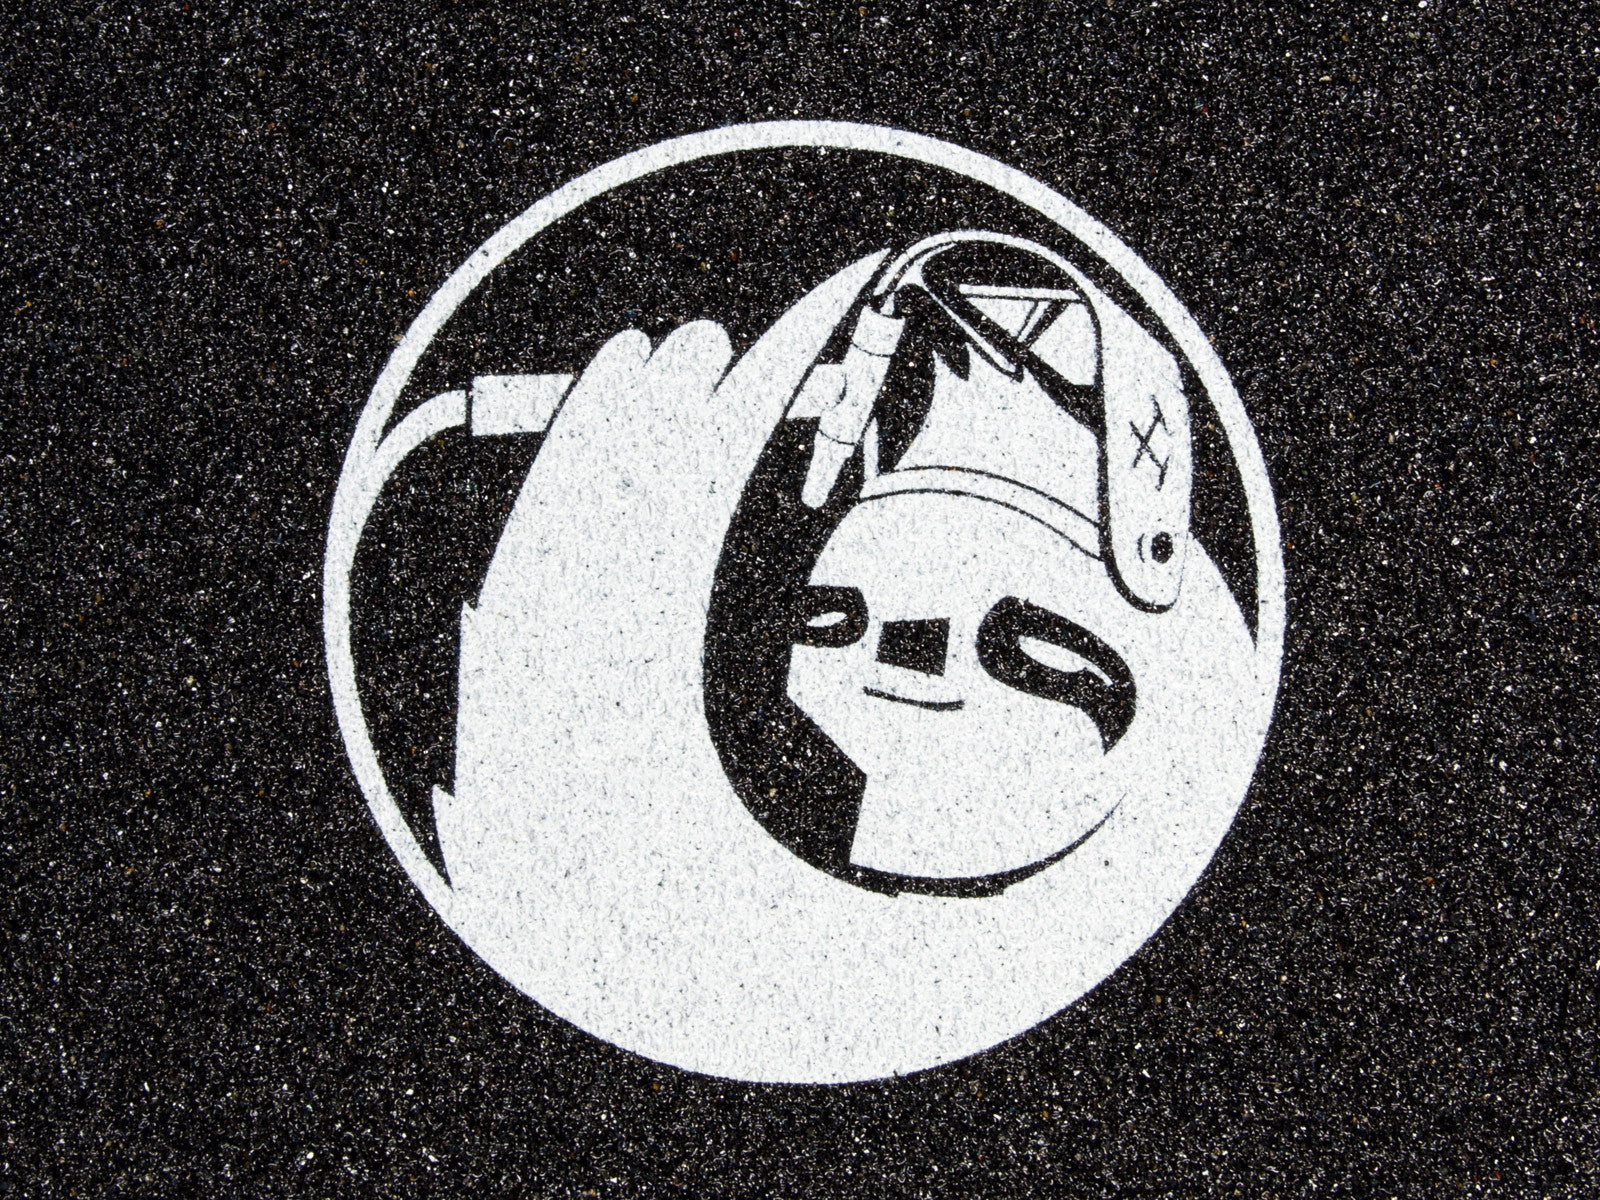 Hella Grip Affinity Sloth GripTape - Mothership